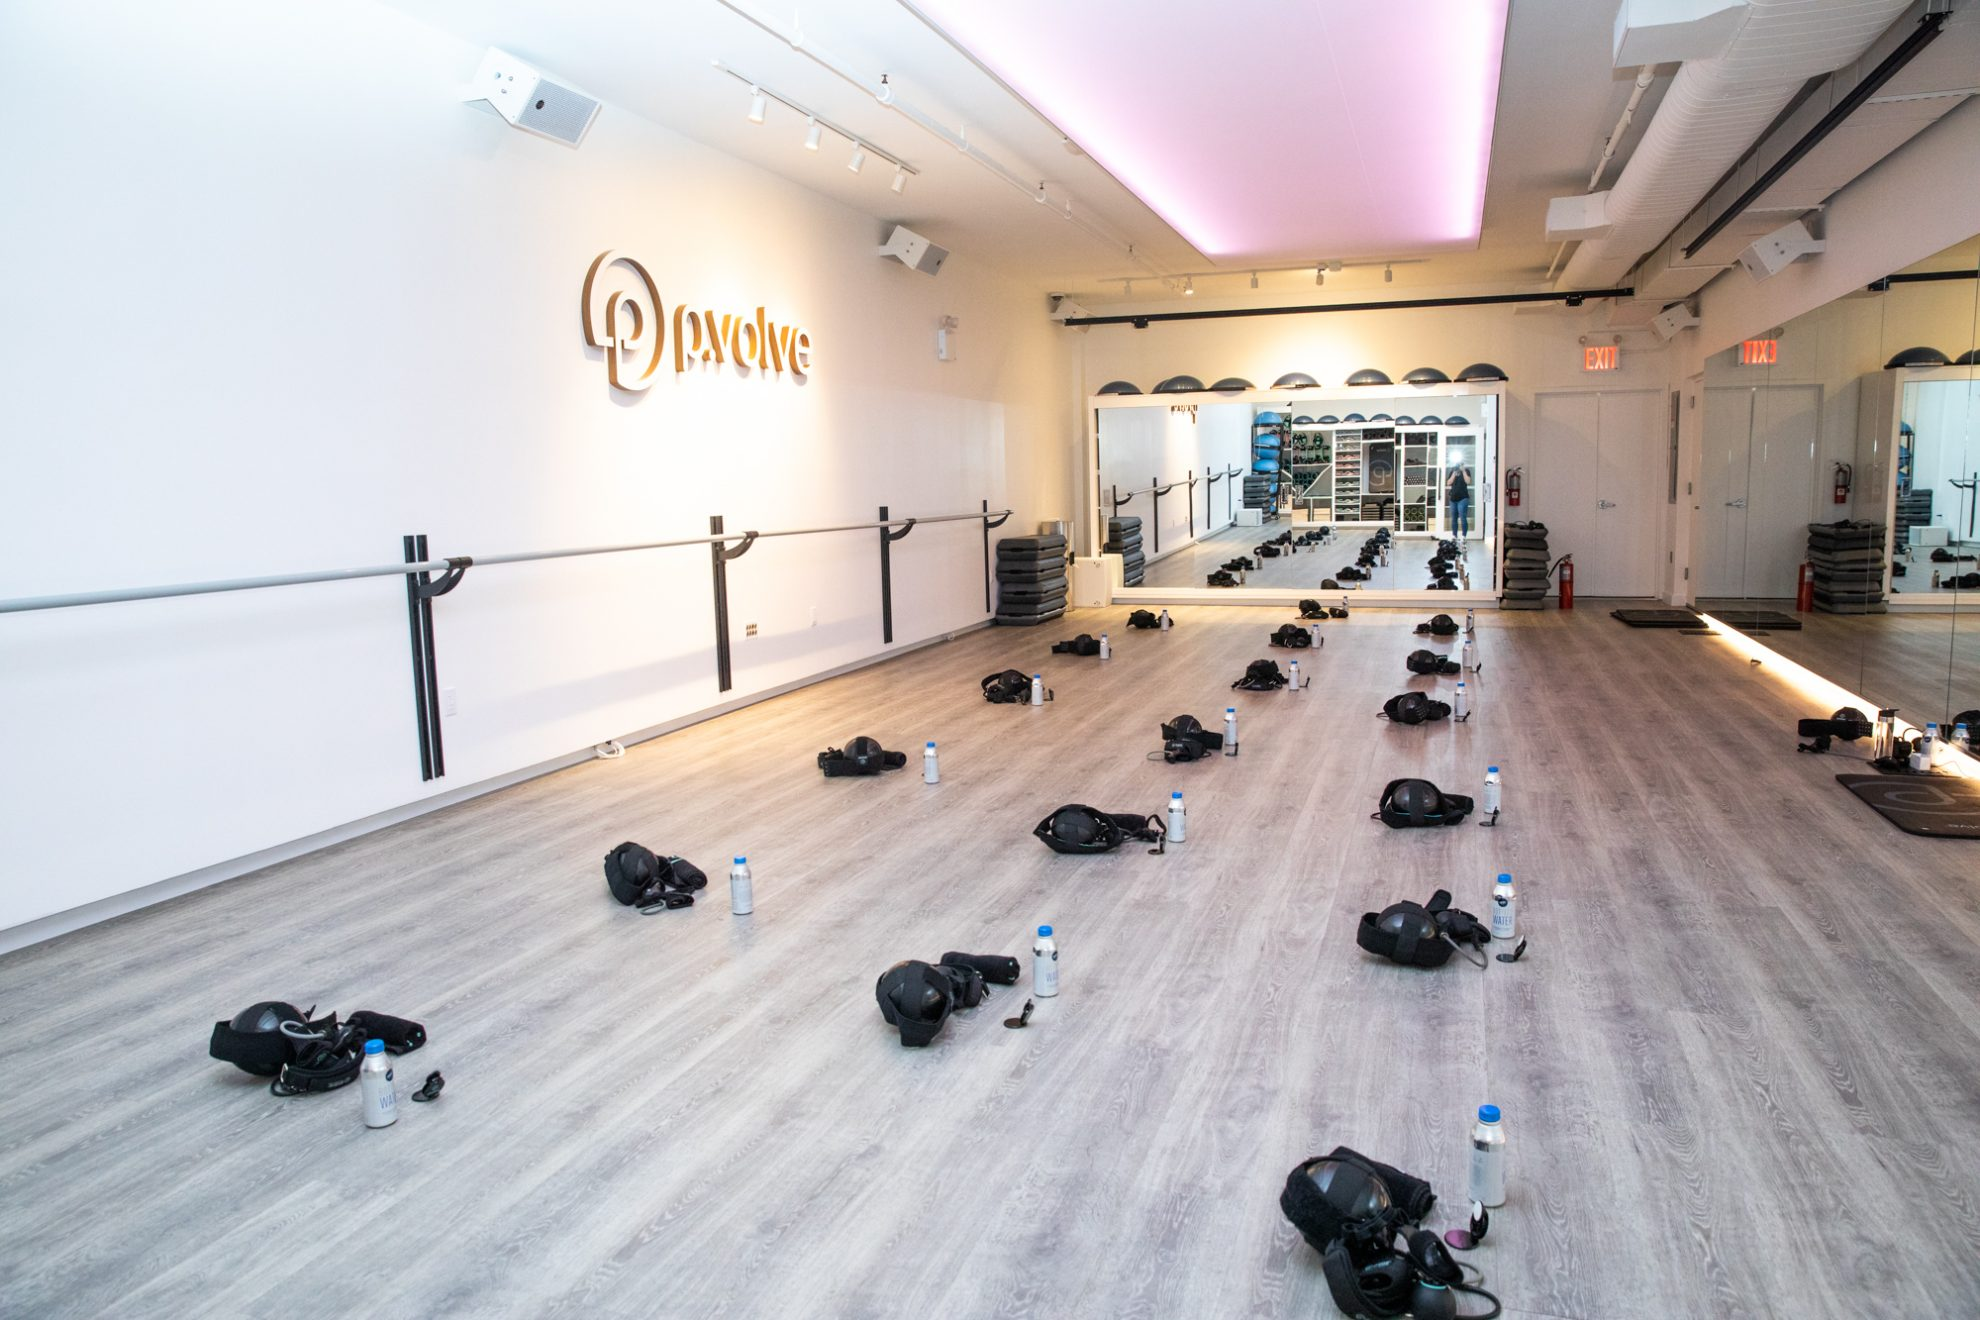 Pvolve is Exercise that works